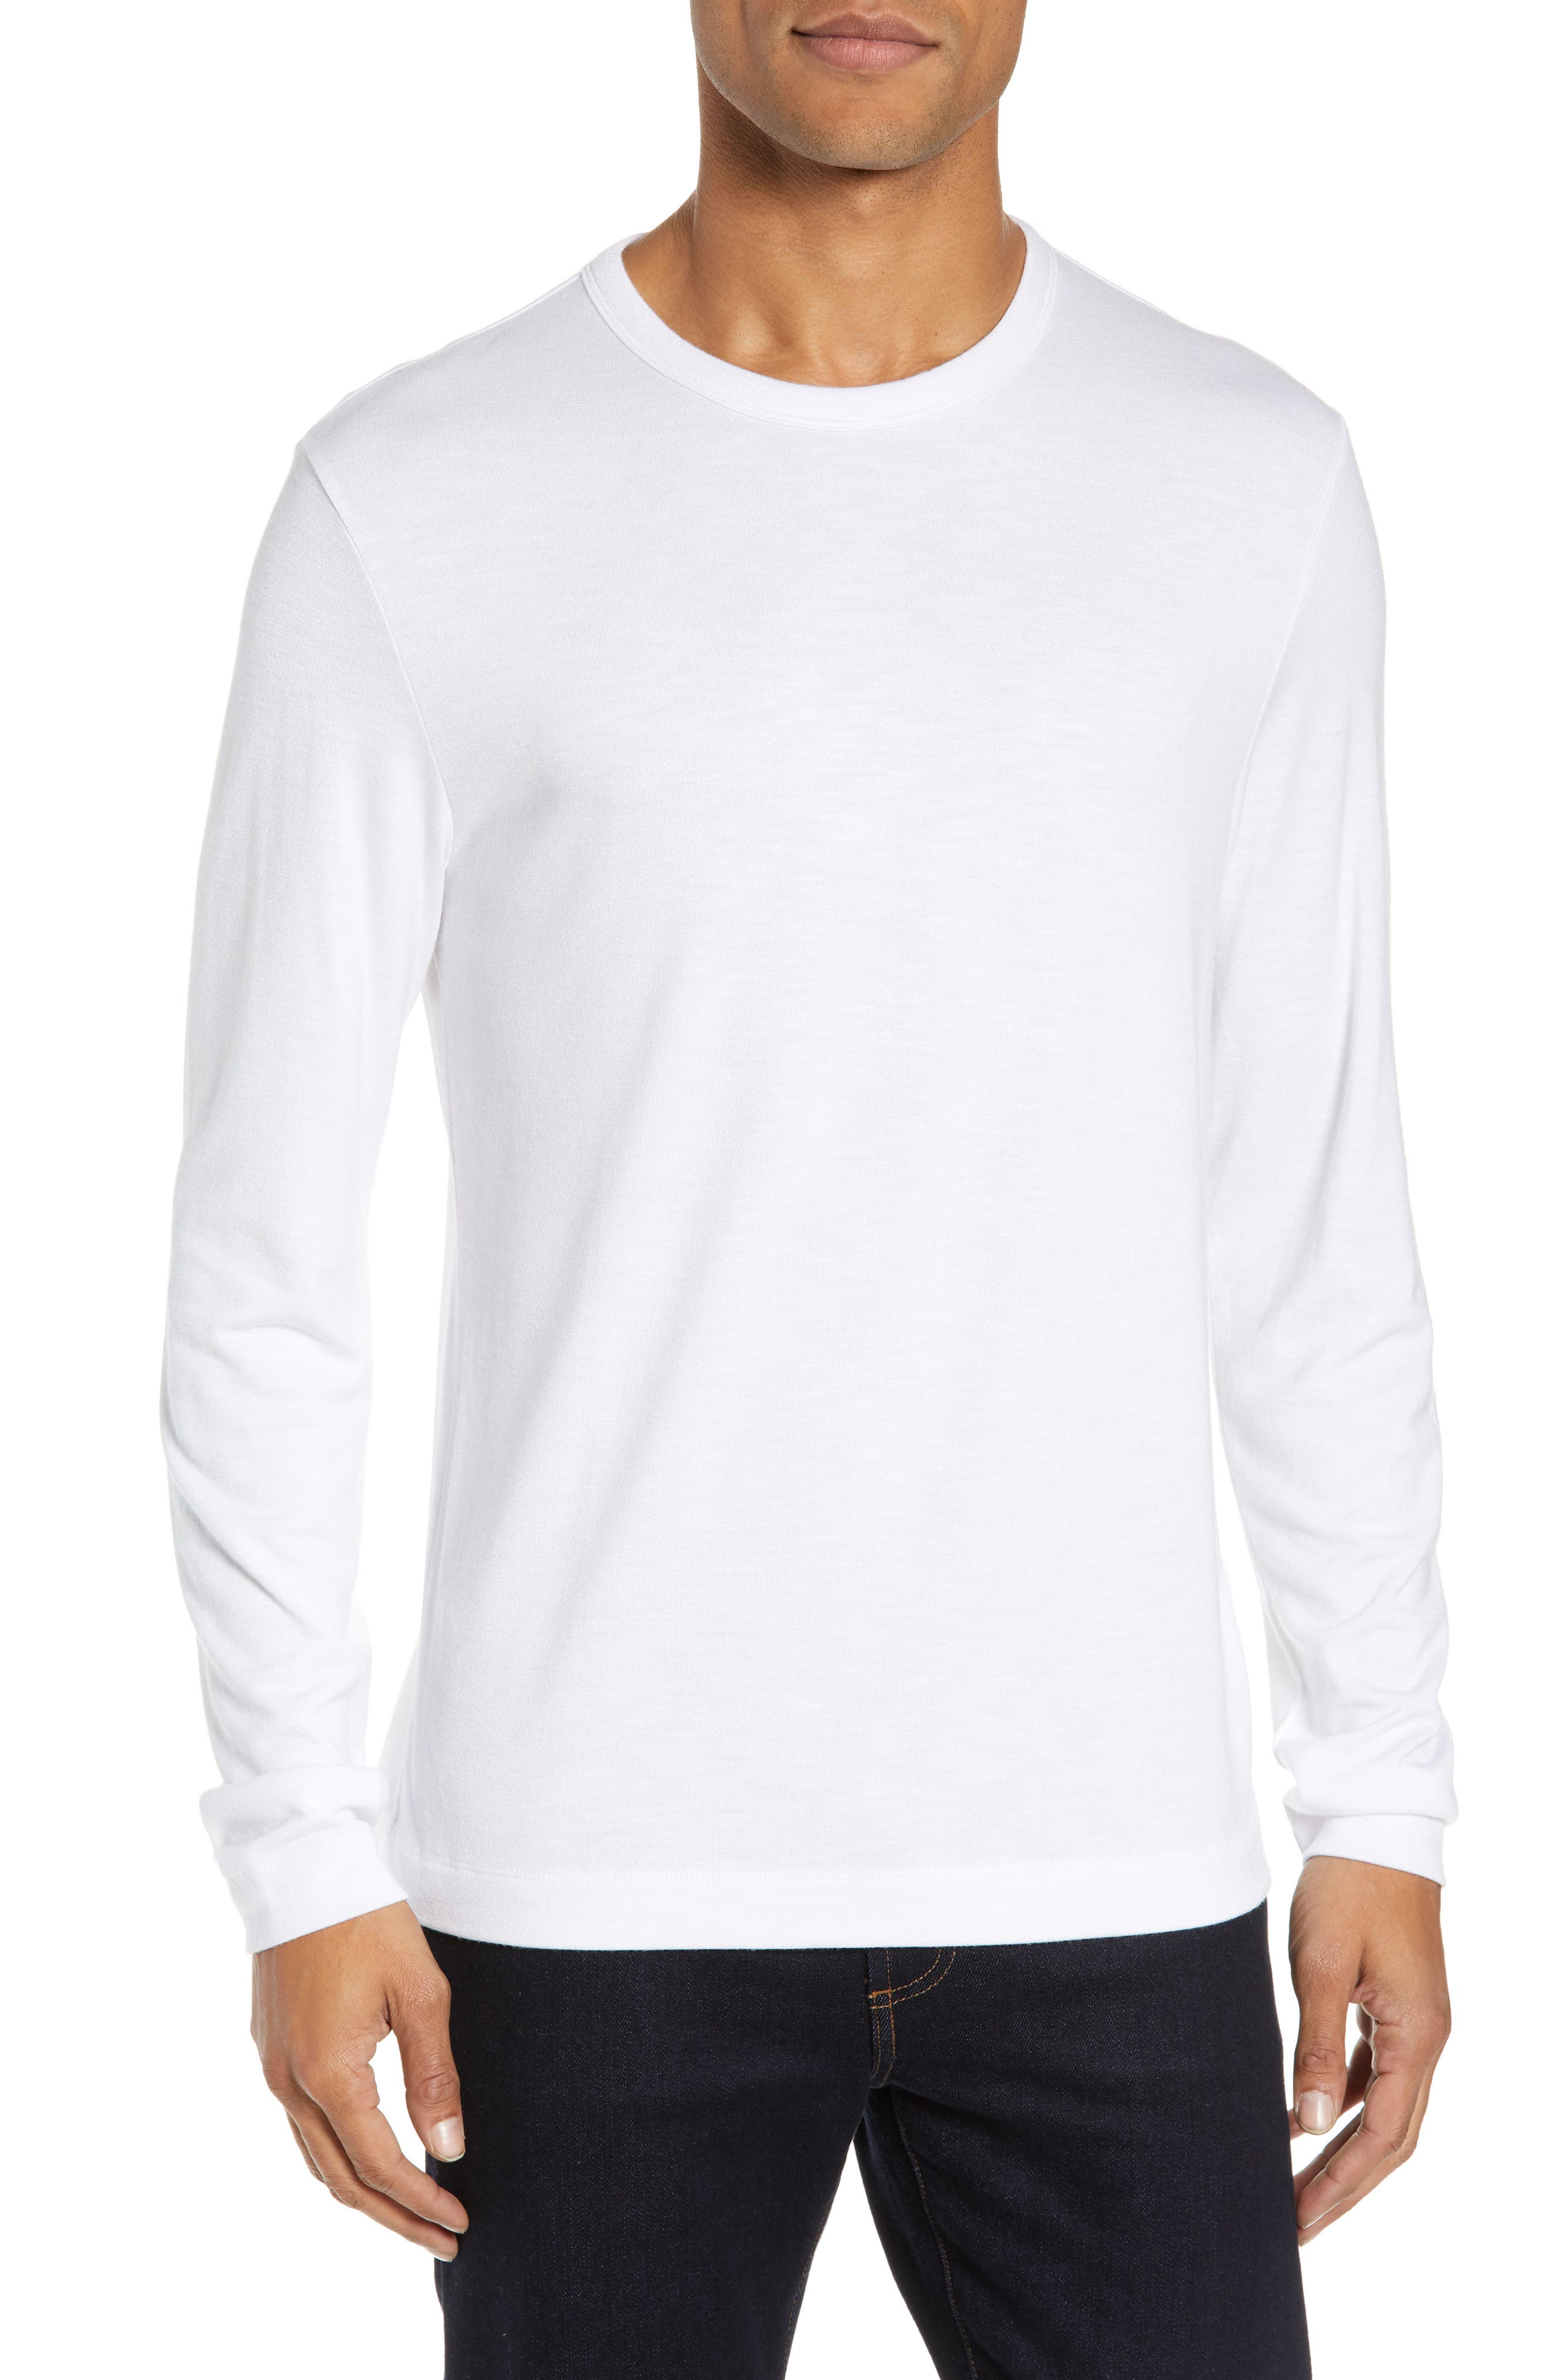 Gaskell Regular Fit Long Sleeve T-Shirt,                             Main thumbnail 1, color,                             WHITE